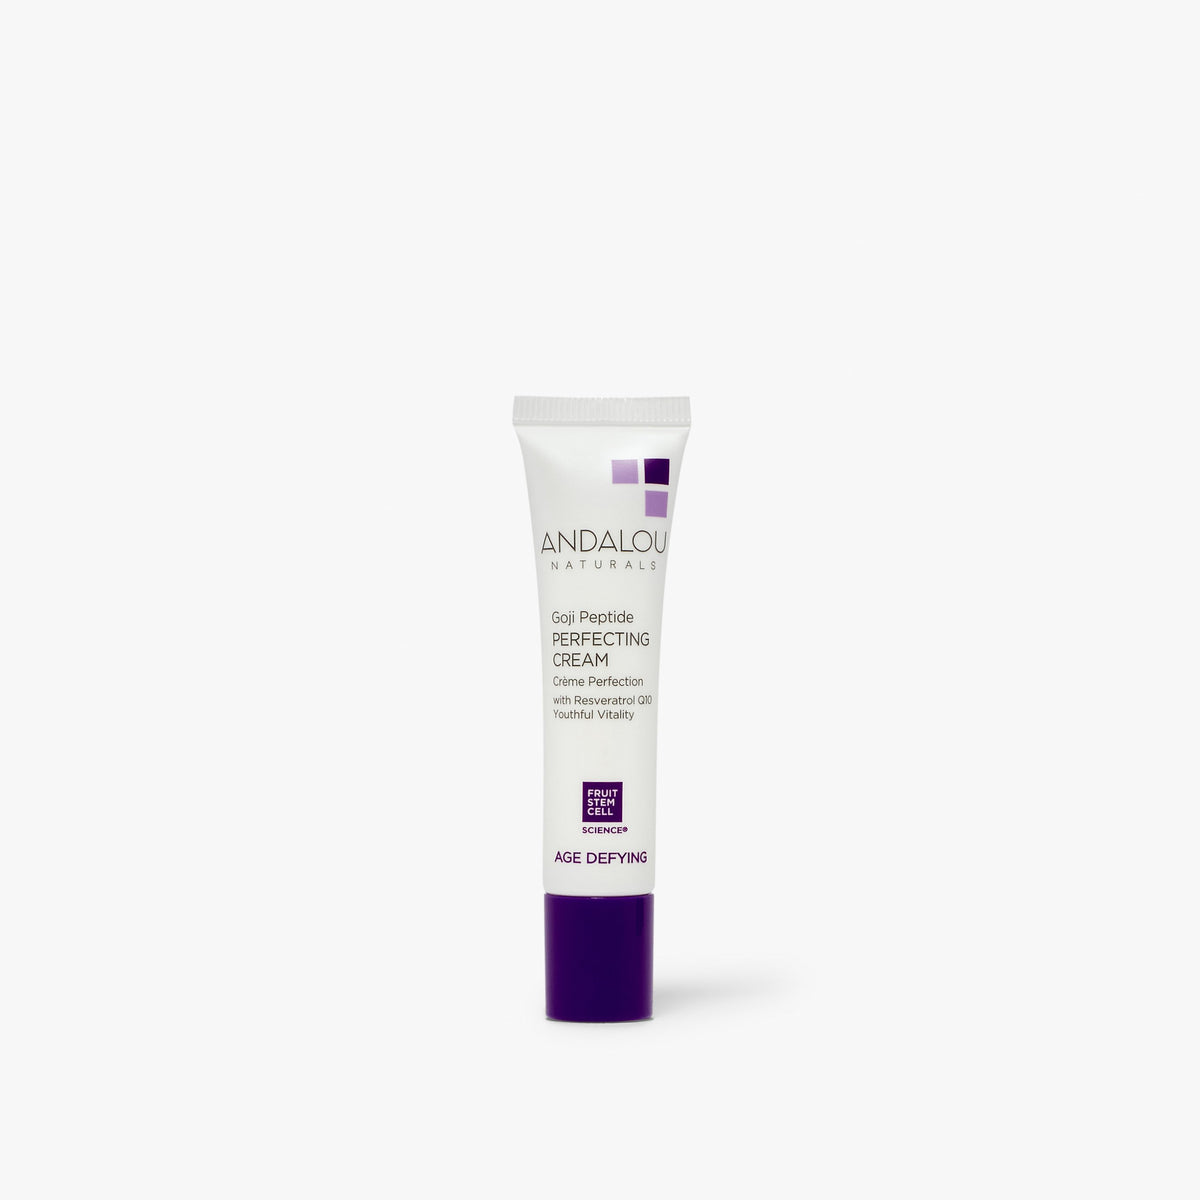 Andalou Naturals Age Defying Goji Peptide Perfecting Cream Sample Size